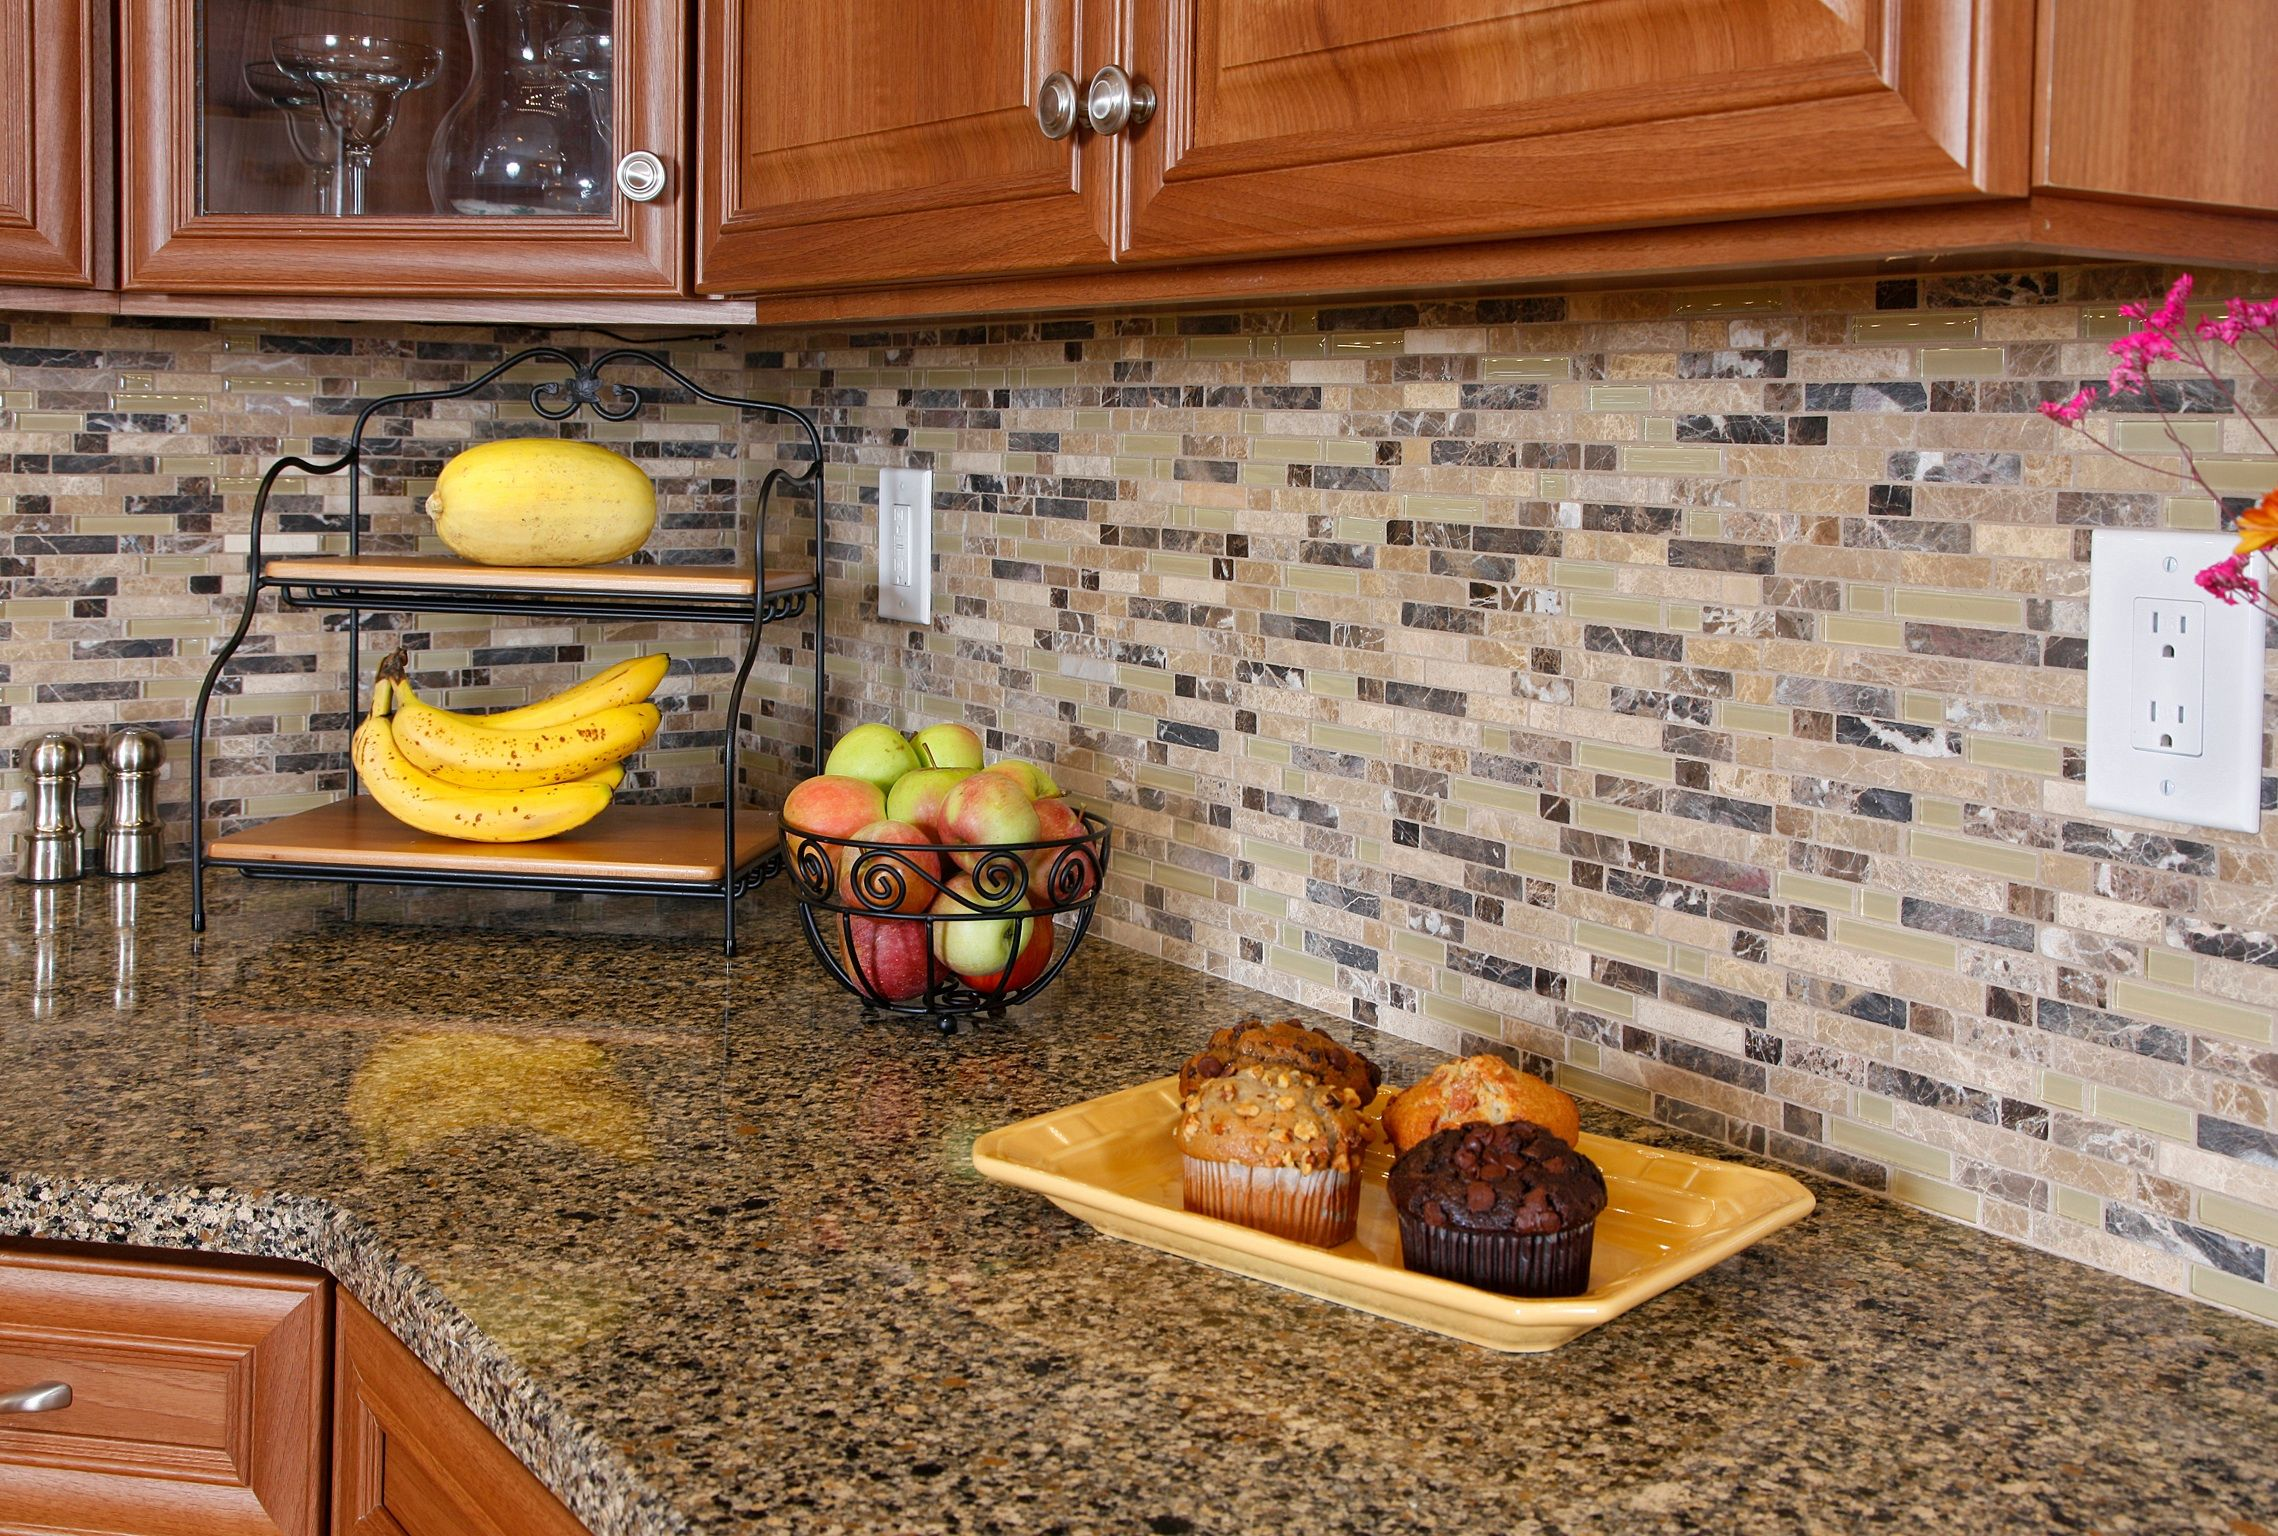 Granite kitchen tile backsplashes ideas baytownkitchen for granite kitchen tile backsplashes ideas baytownkitchen for backsplash with countertops from search dailygadgetfo Images